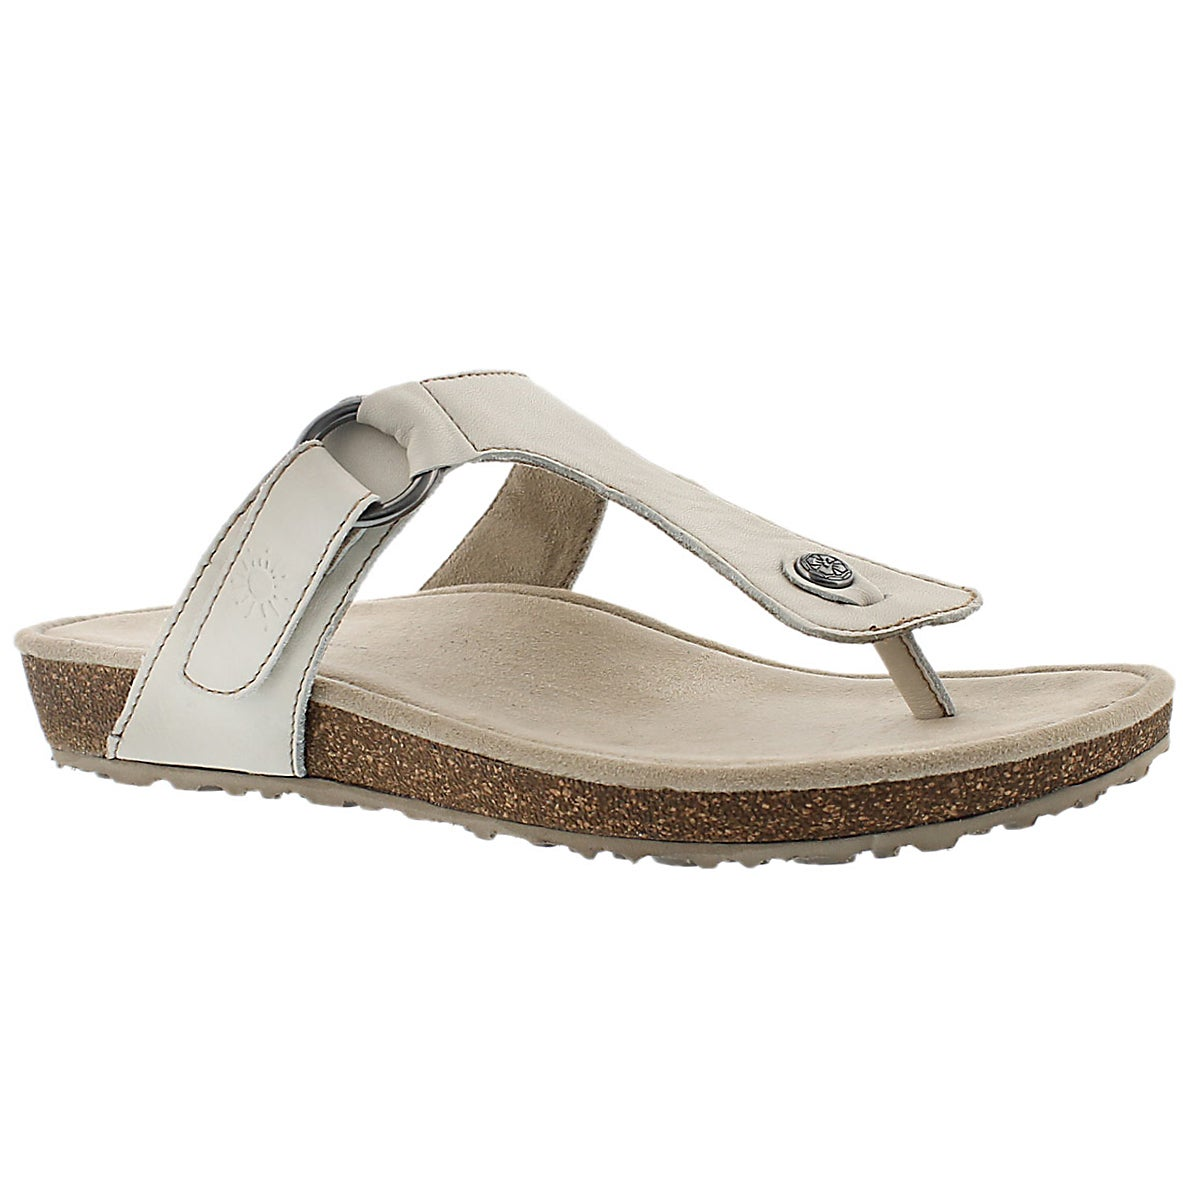 Women's LOUISA white casual thong sandals